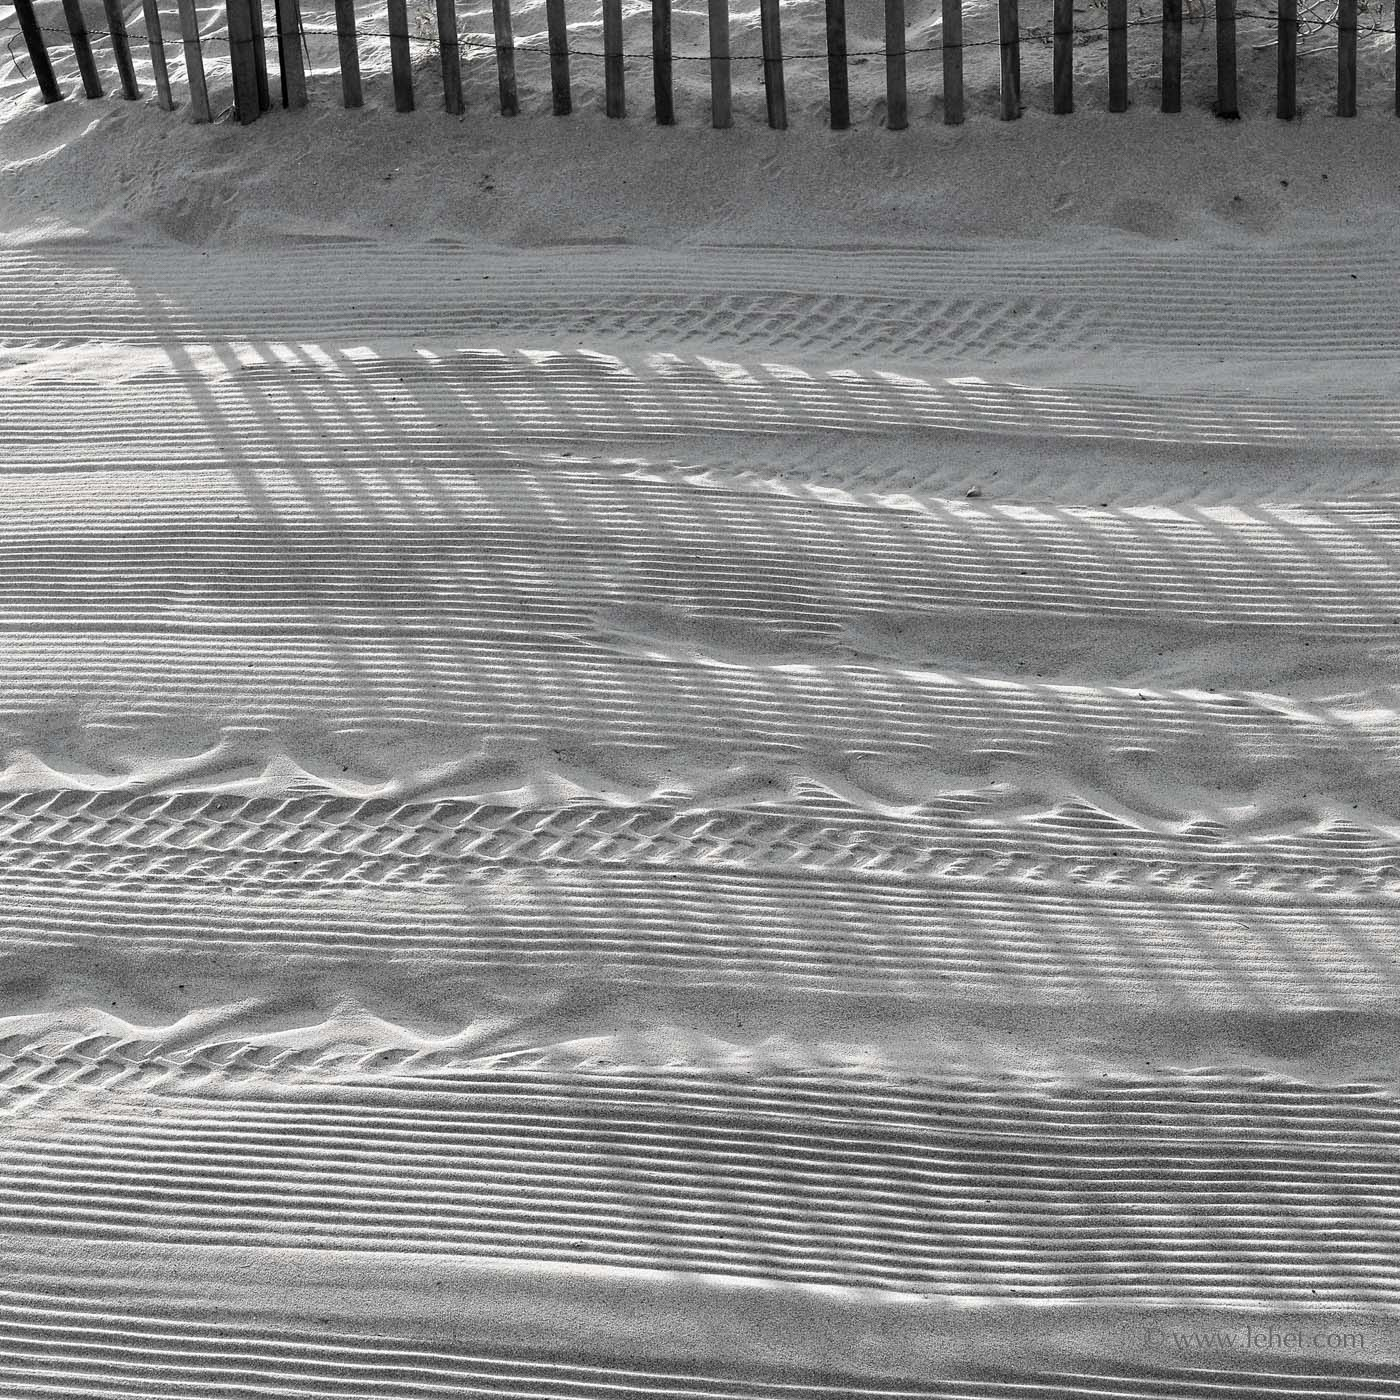 Dune Fence and Beach Grooming, Jersey Shore